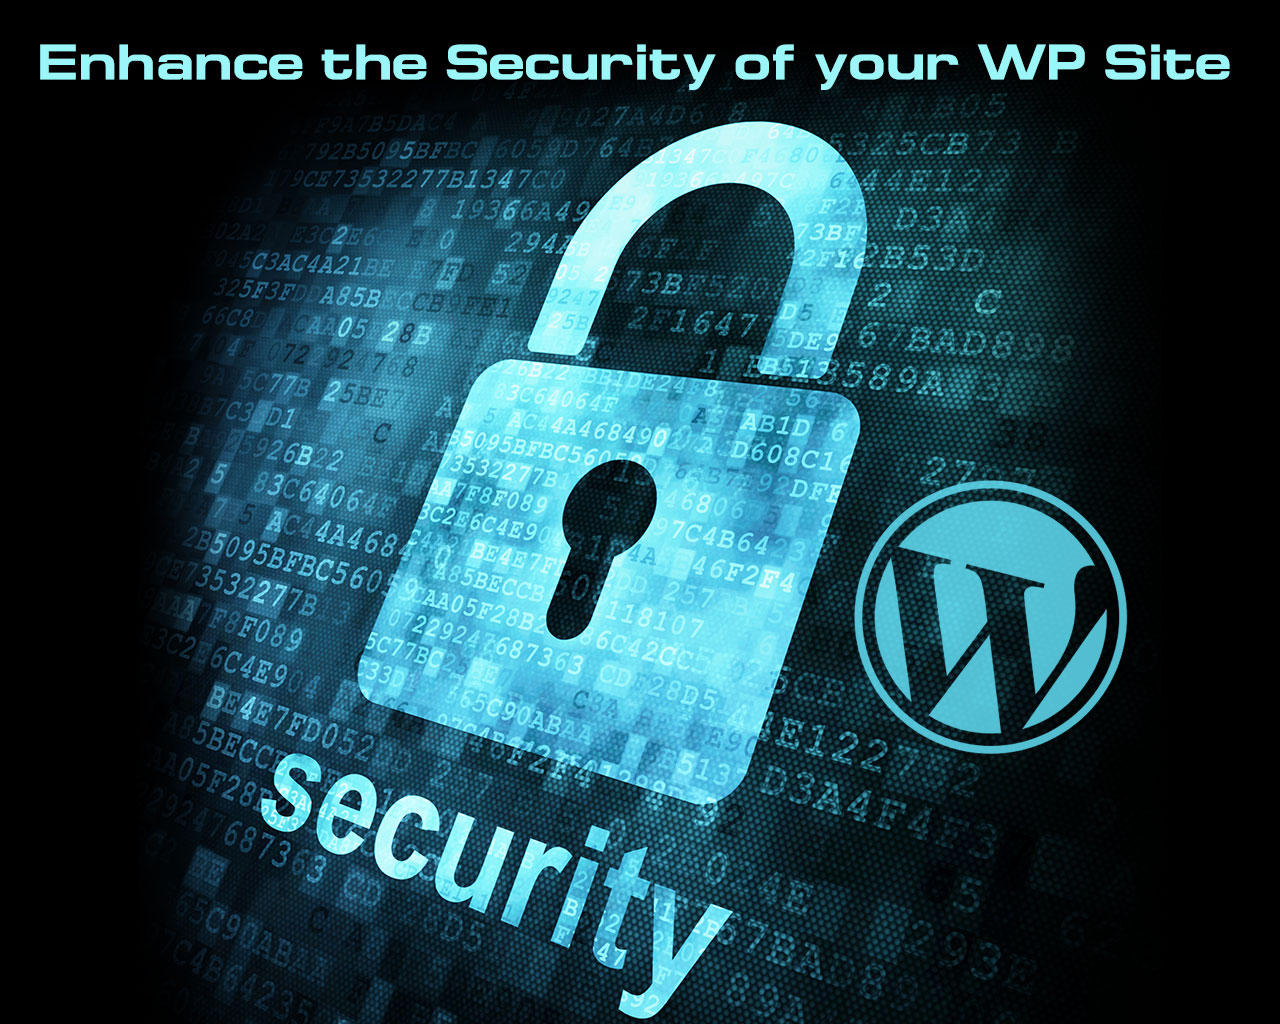 Enhance the Security of your WordPress site by asyuti47 - 85484